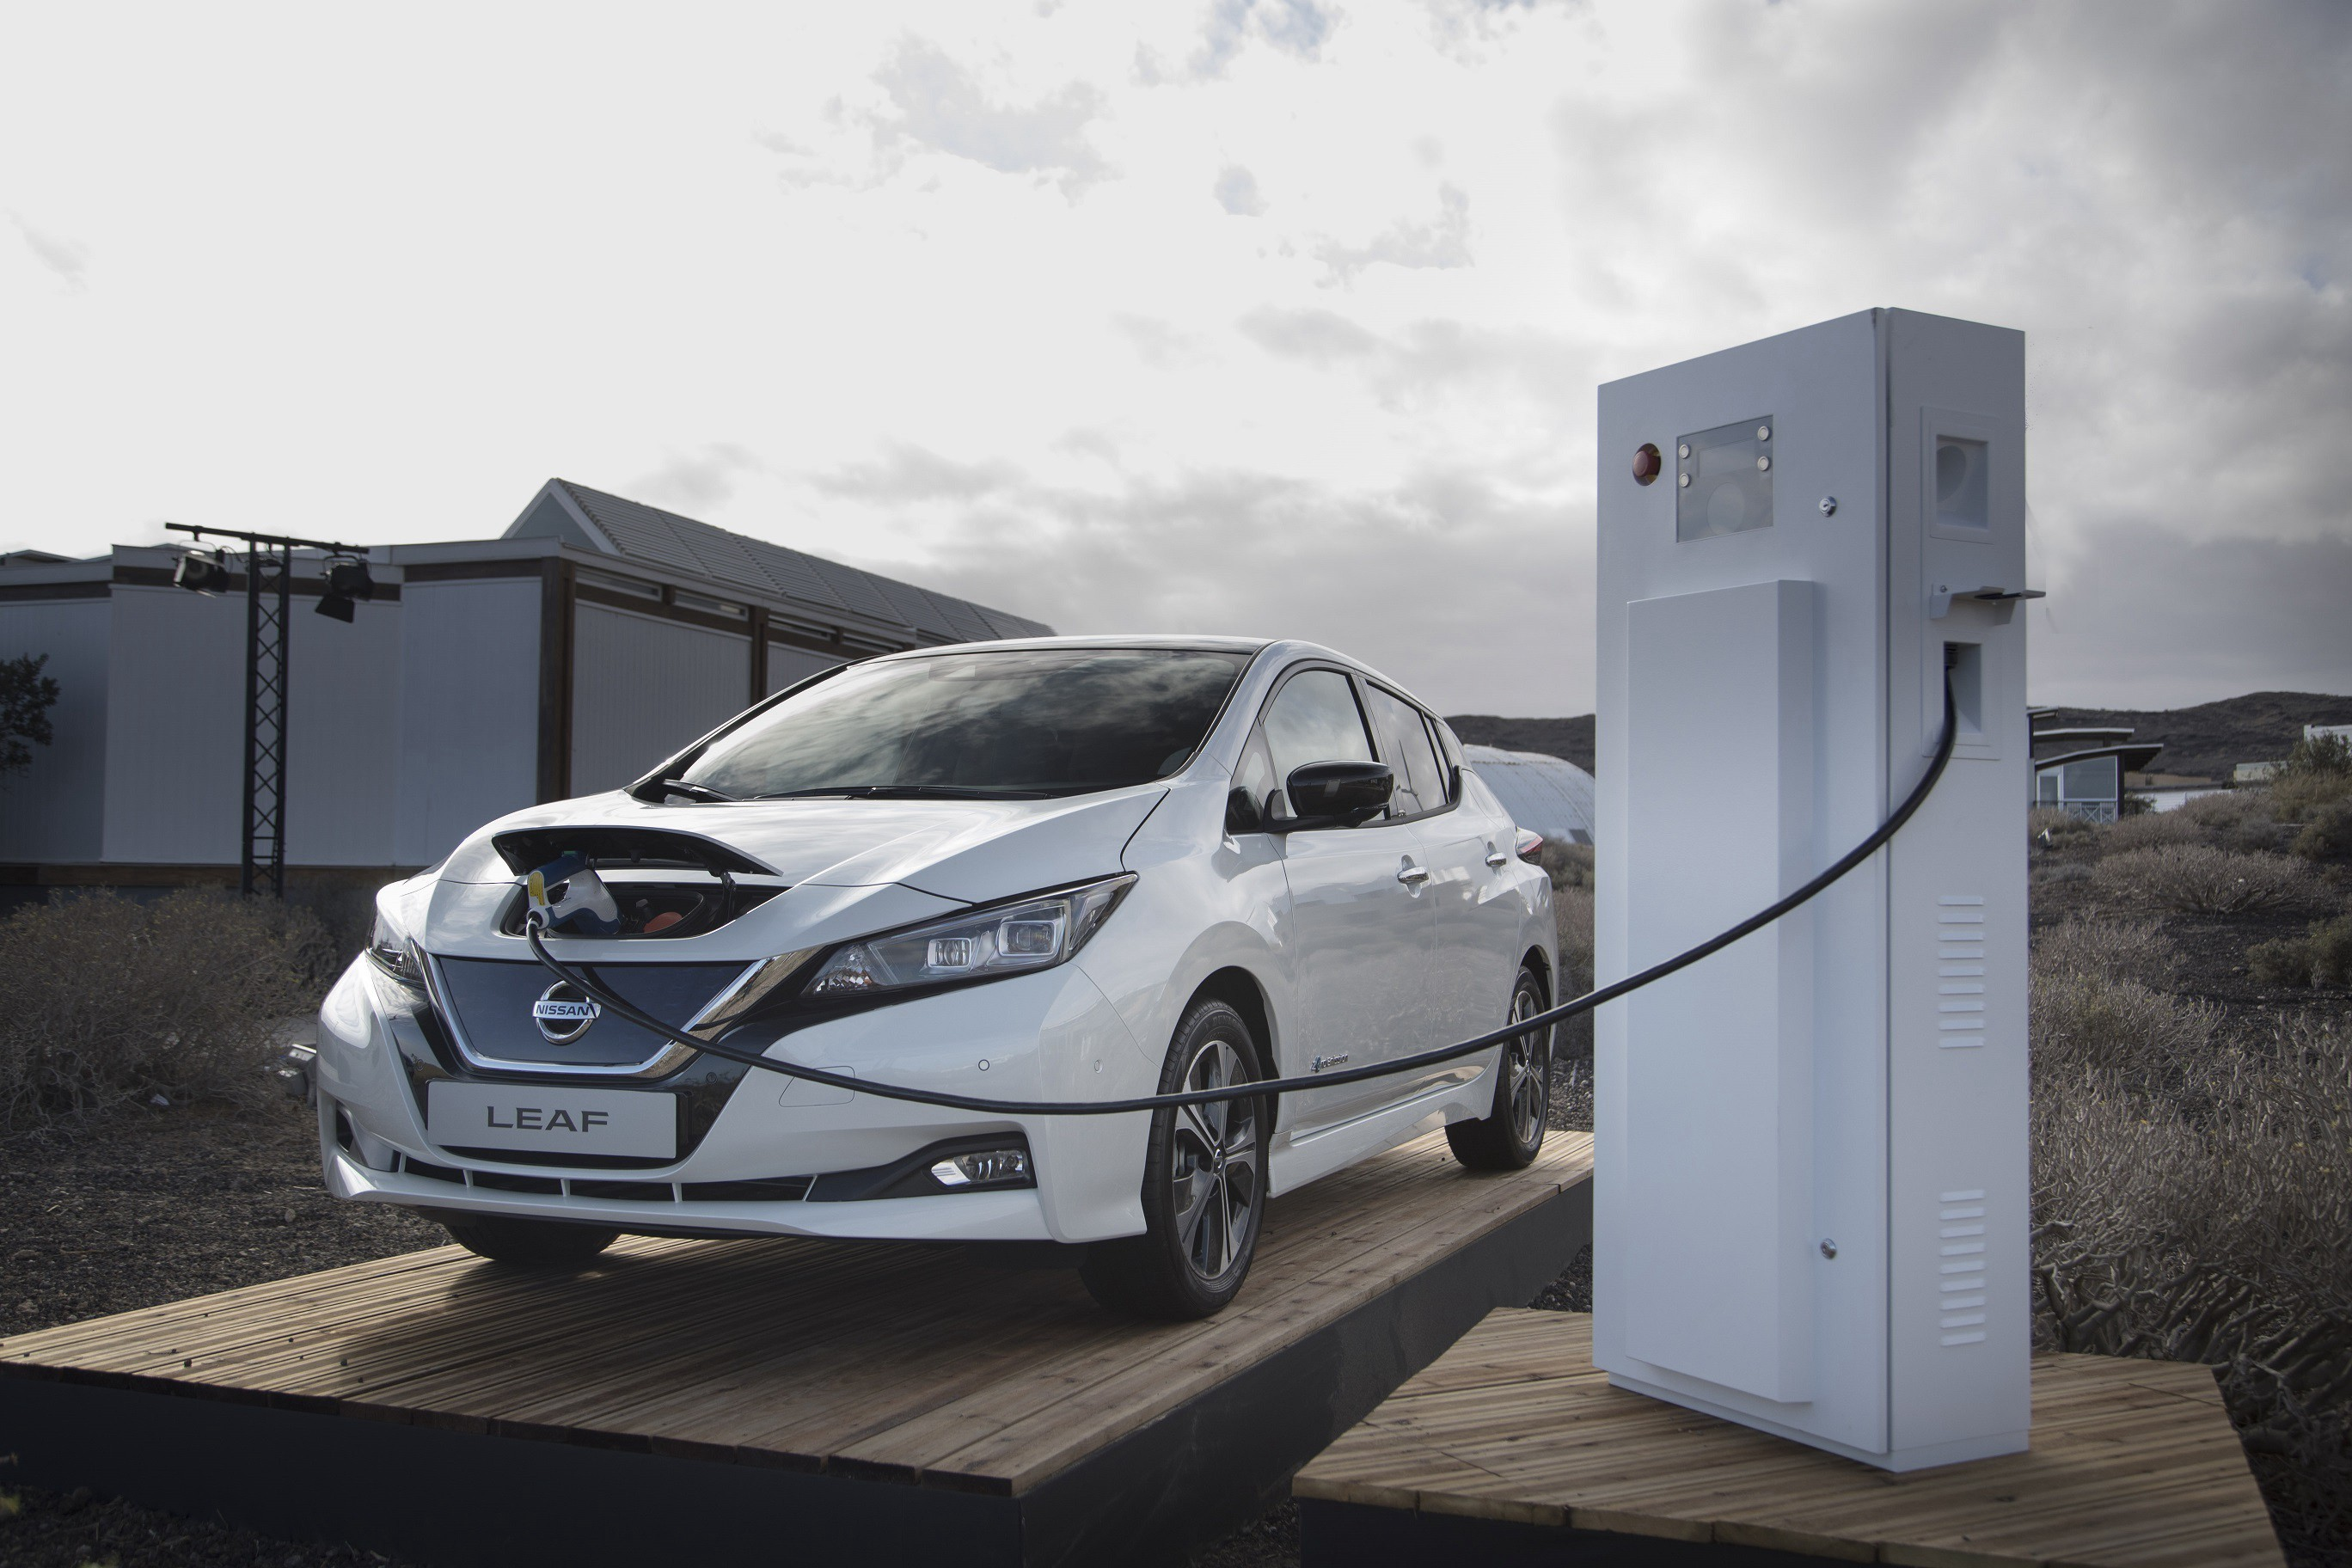 Side gig: Nissan Leaf owners may be able to make money through V2G - vehicle to grid - technology.